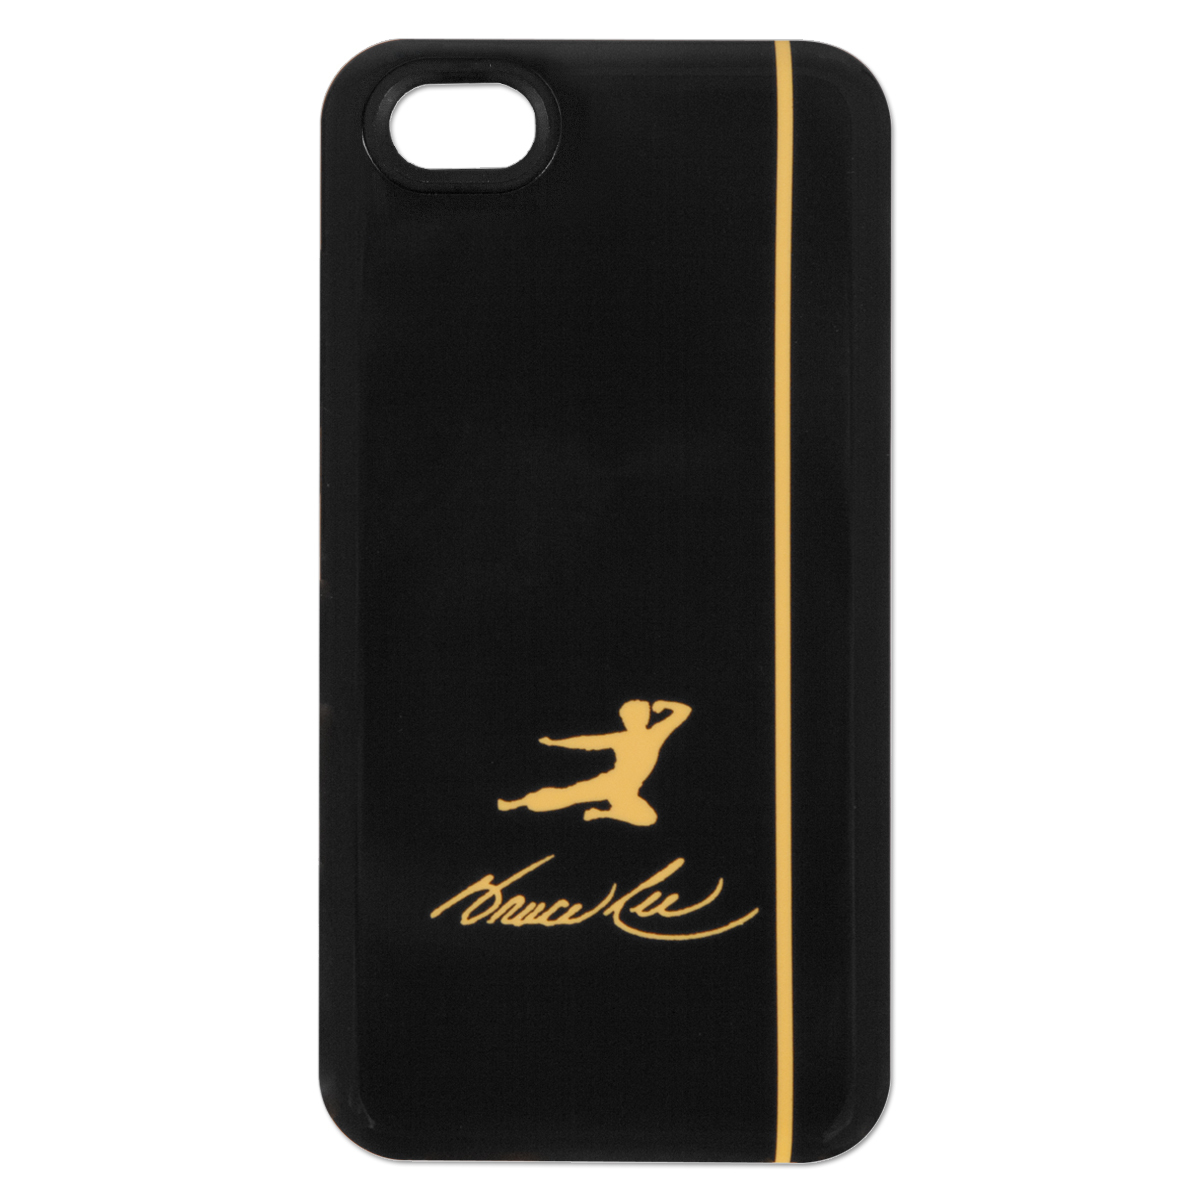 Bruce Lee Yellow Kick Logo iPhone 4/4S Case